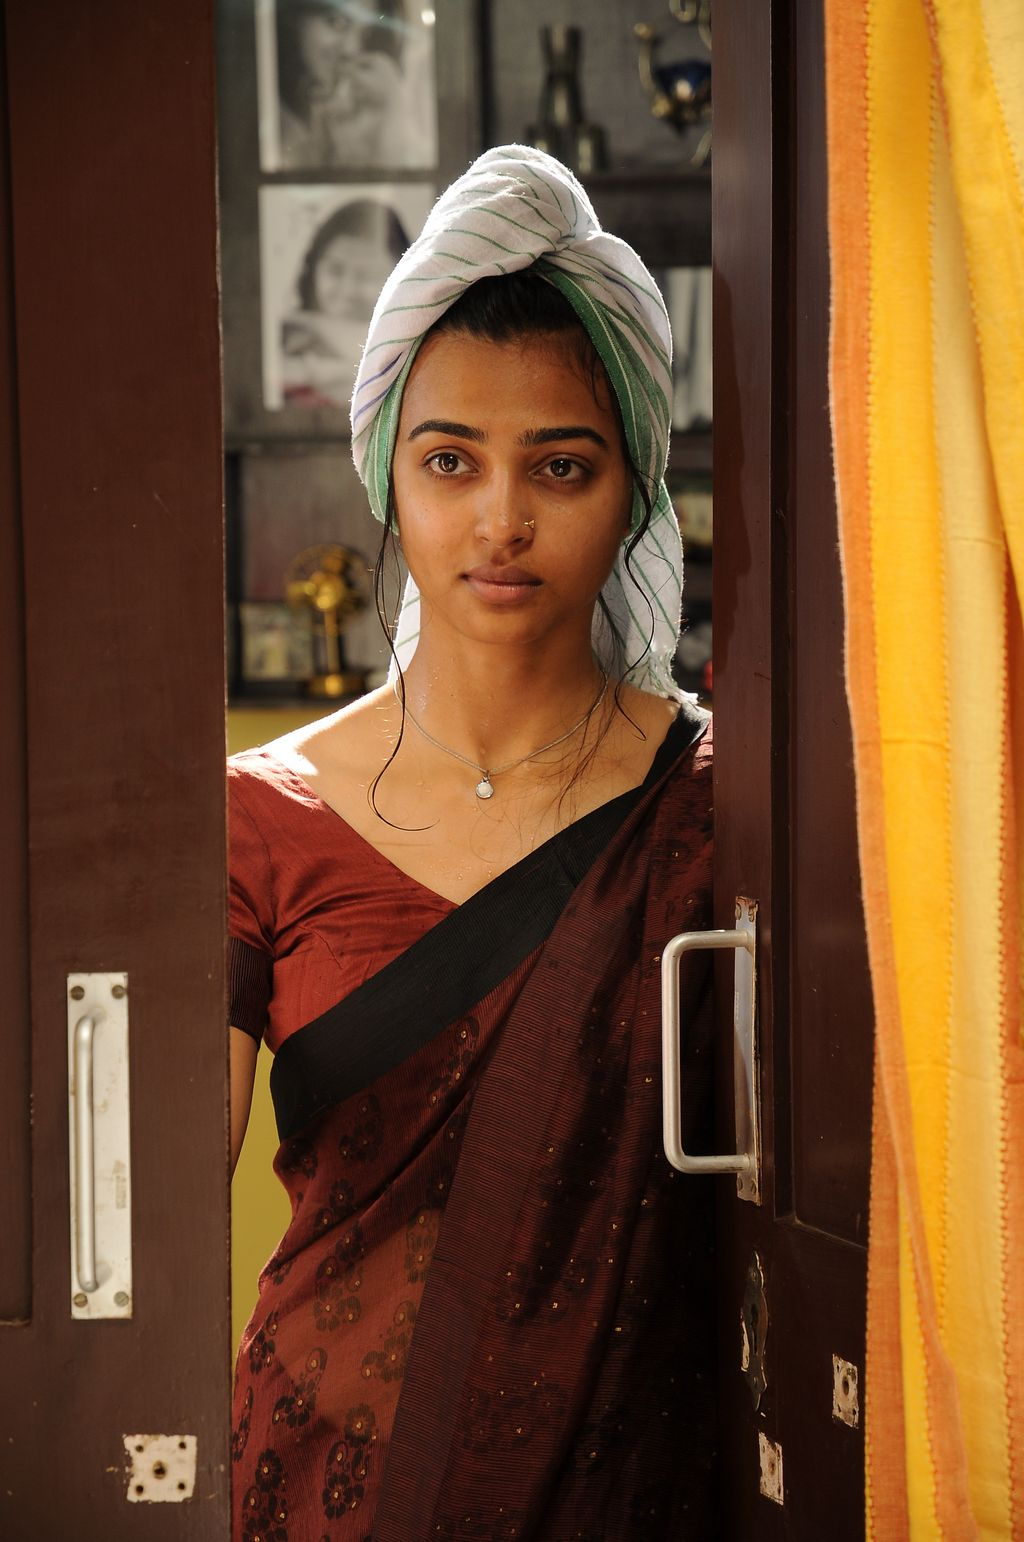 Sab hot actress radhika apte latest hot and spicy photo for Heroines bathroom photos